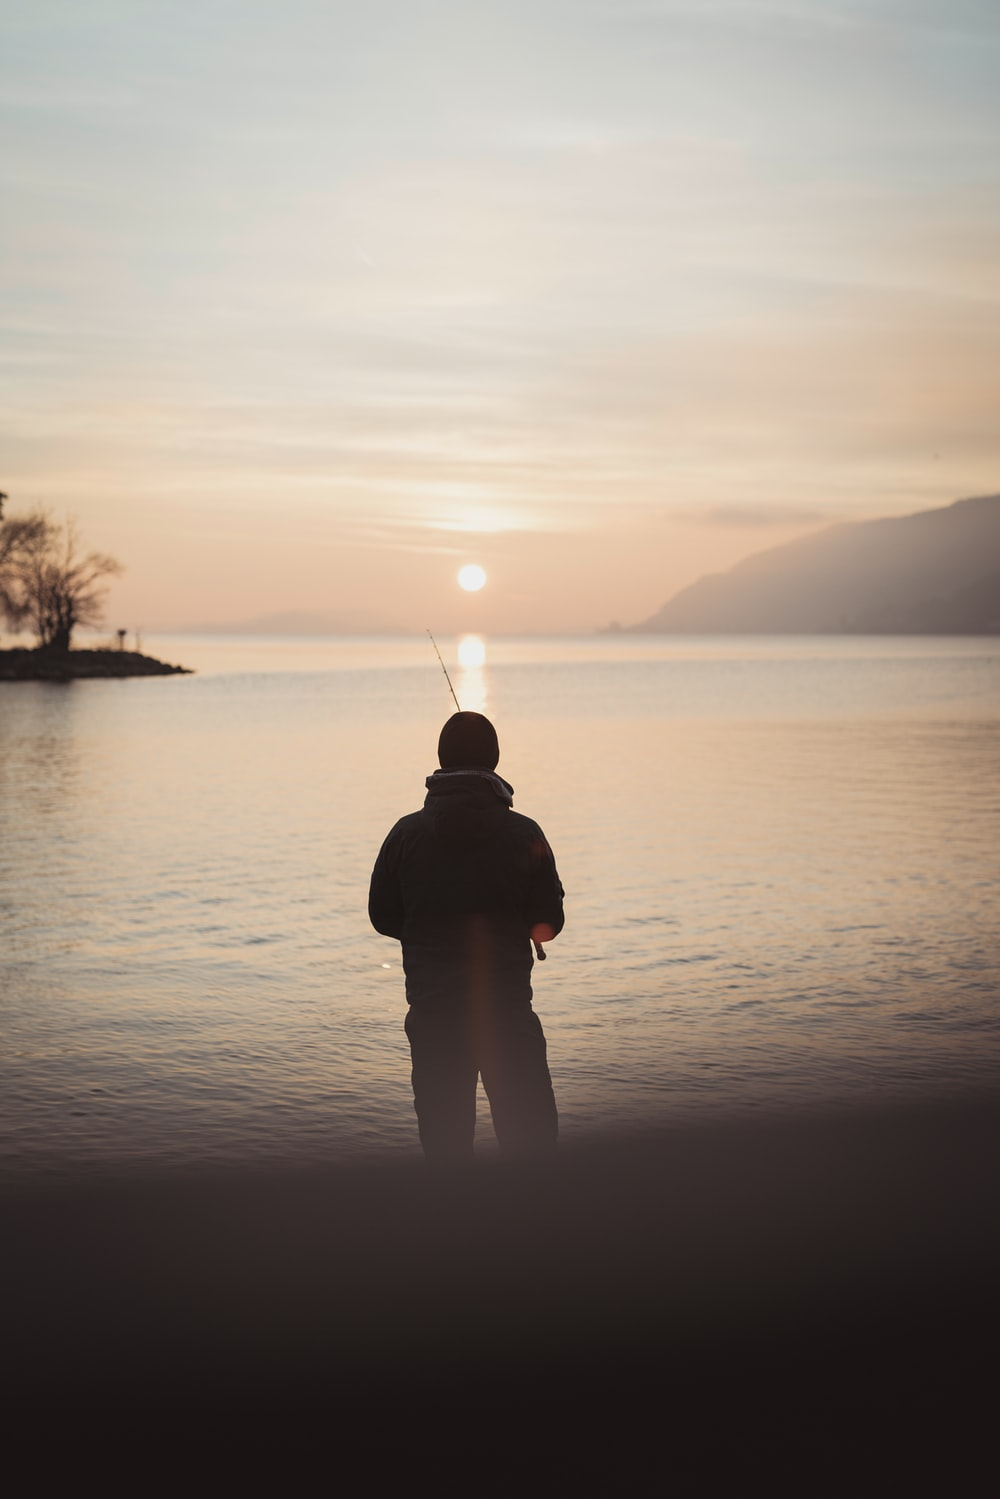 silhouette of person holding fishing rod across body of water